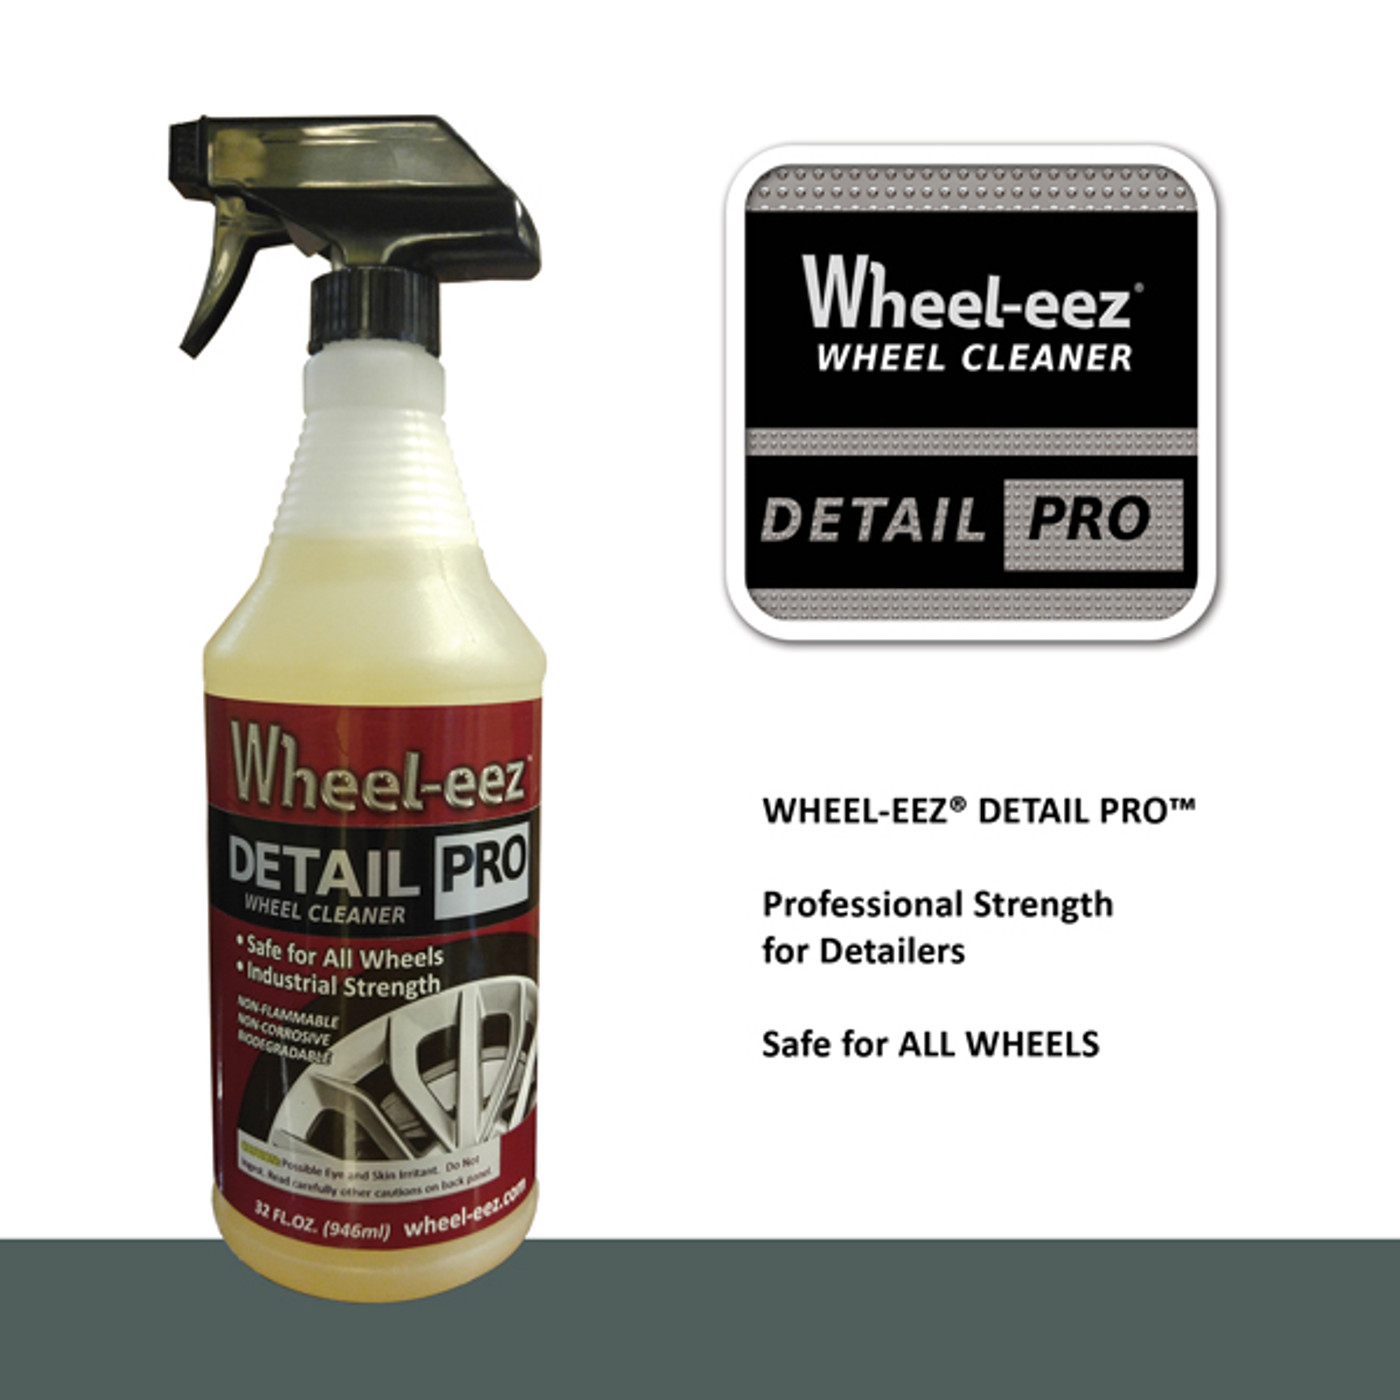 Wheel-eez™ Detail Pro™ offers superior cleaning for ALL WHEEL TYPES and is our strongest. Our Professional Wheel Cleaner can tackle the worst greasy brake dust, dirt, and grime! Safer and Non-Corrosive: Wheel-eez® Detail Pro™ is designed to be non corrosive, unlike most other heavy duty wheel cleaners. It's Environmentally Friendly and is Biodegradable.